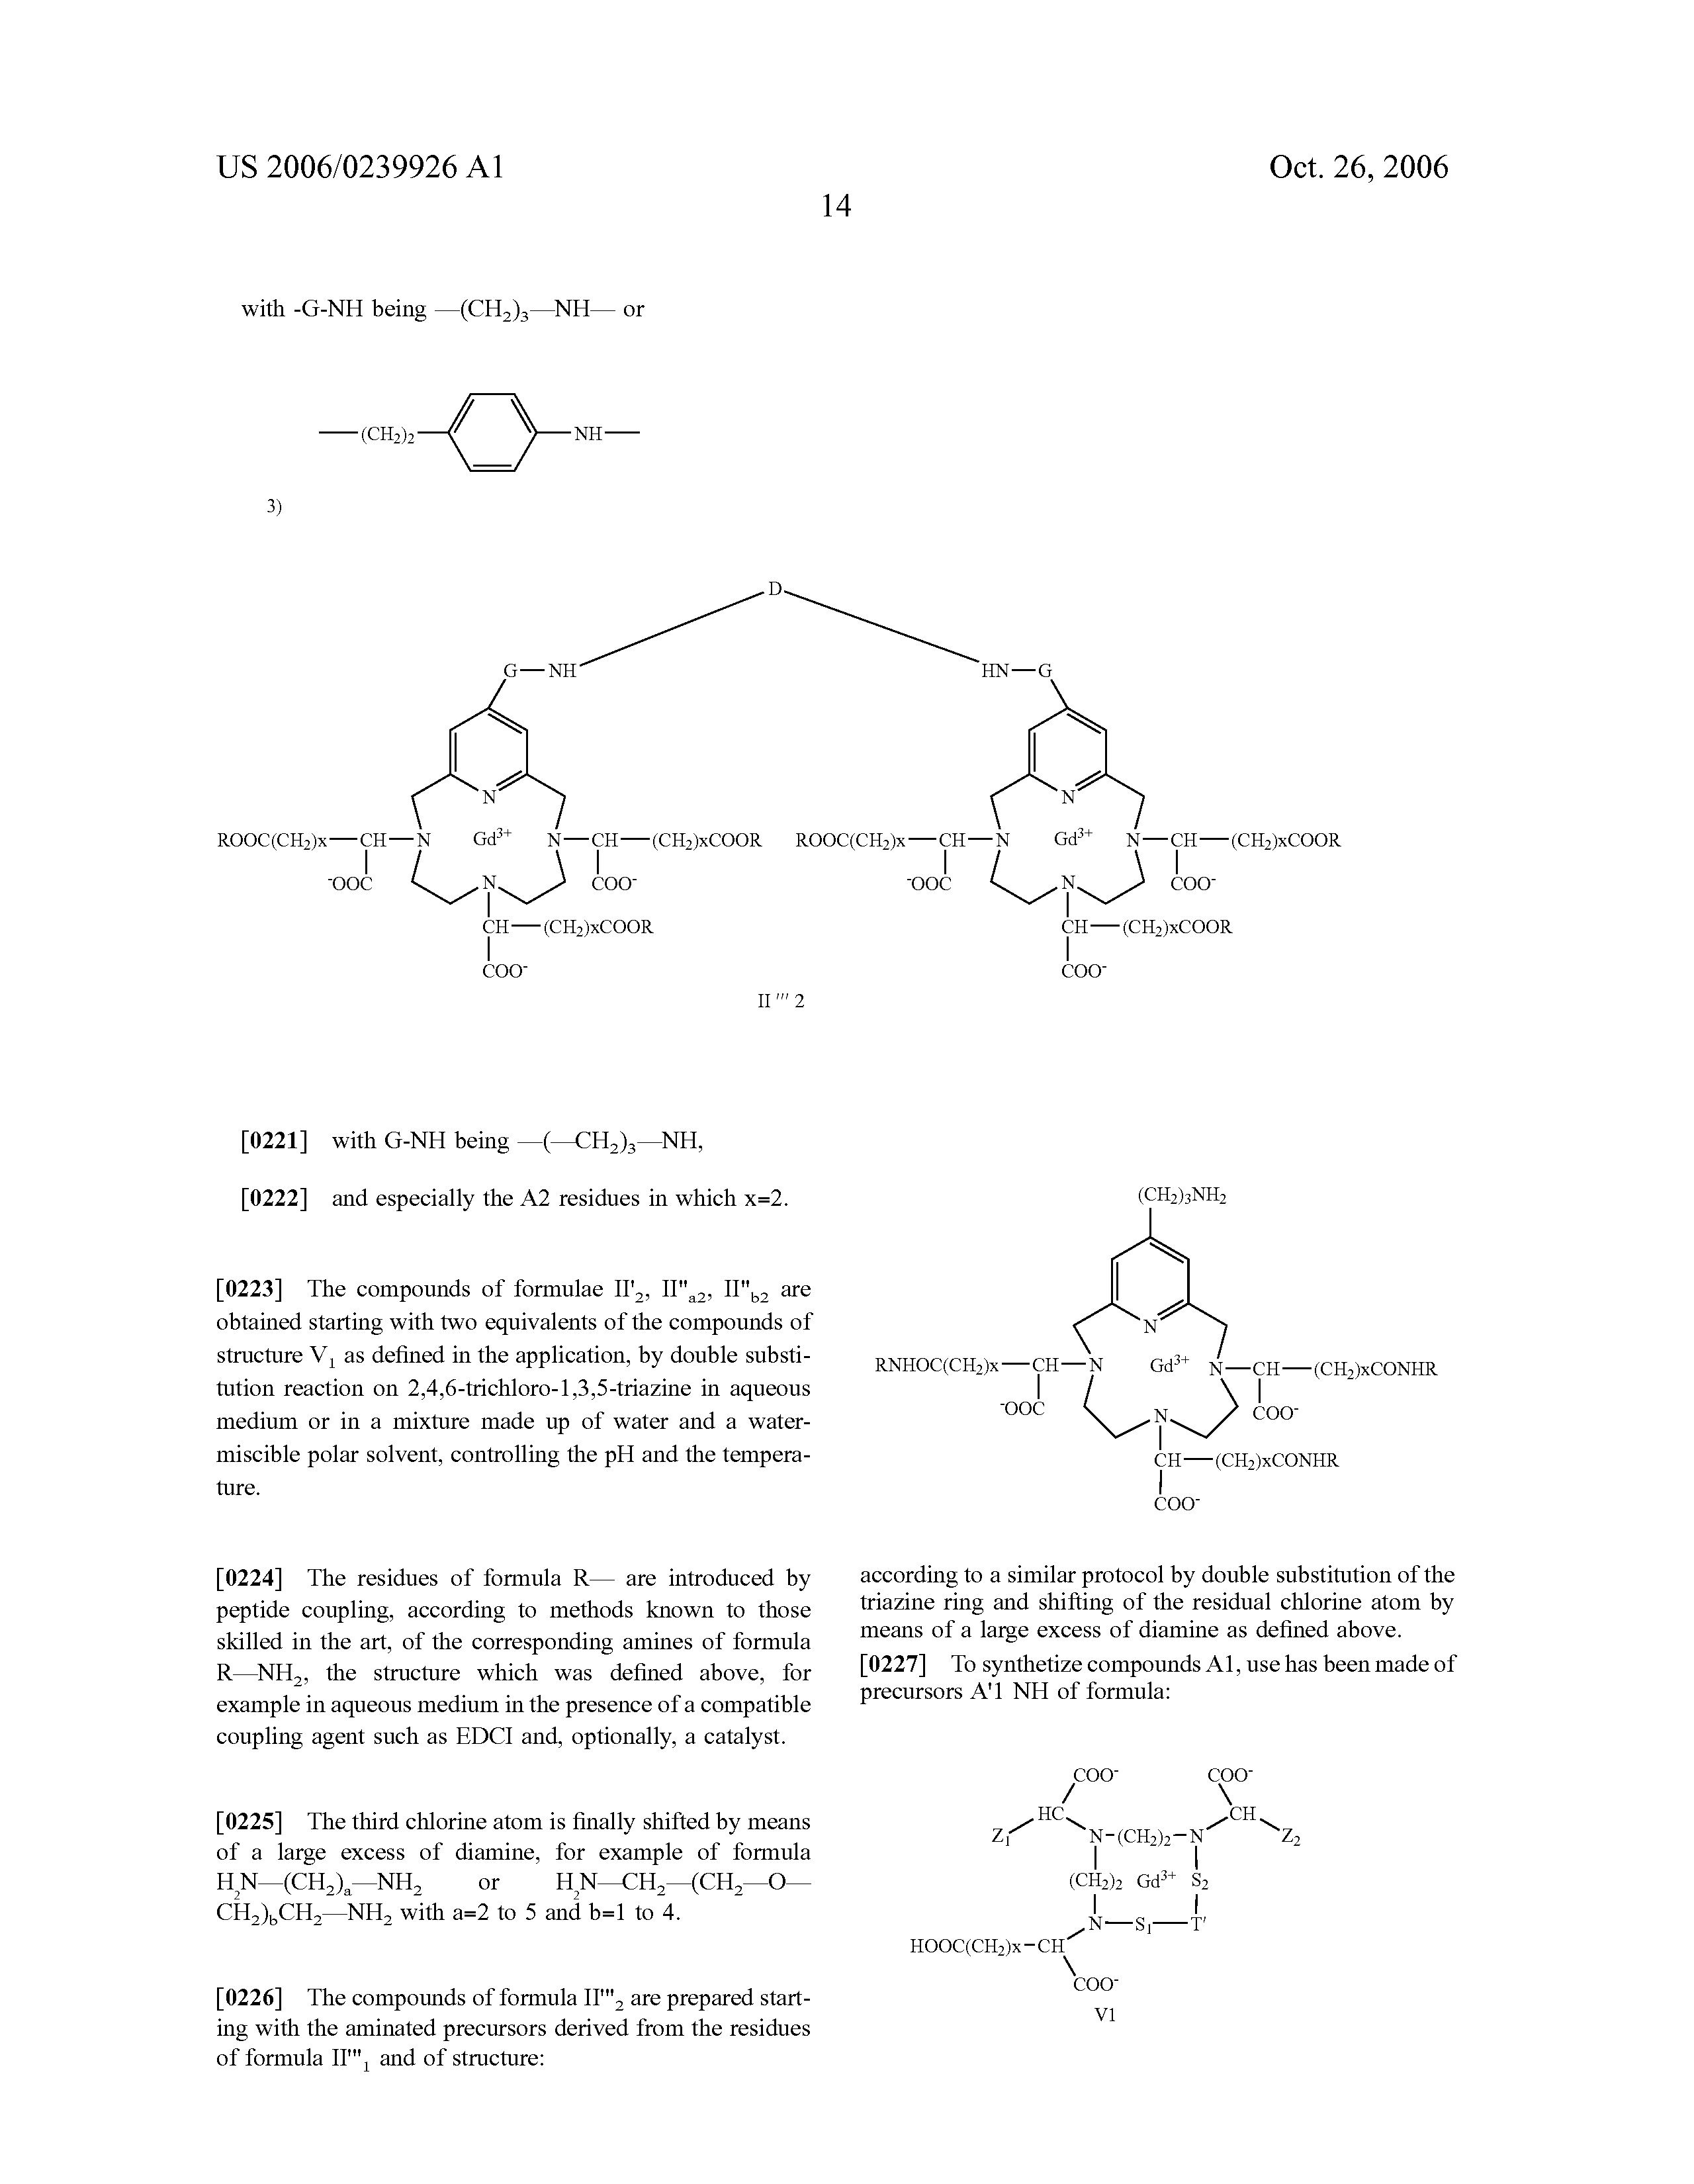 US 2006/0239926 A1 - Specific High-relaxivity Compounds - The Lens